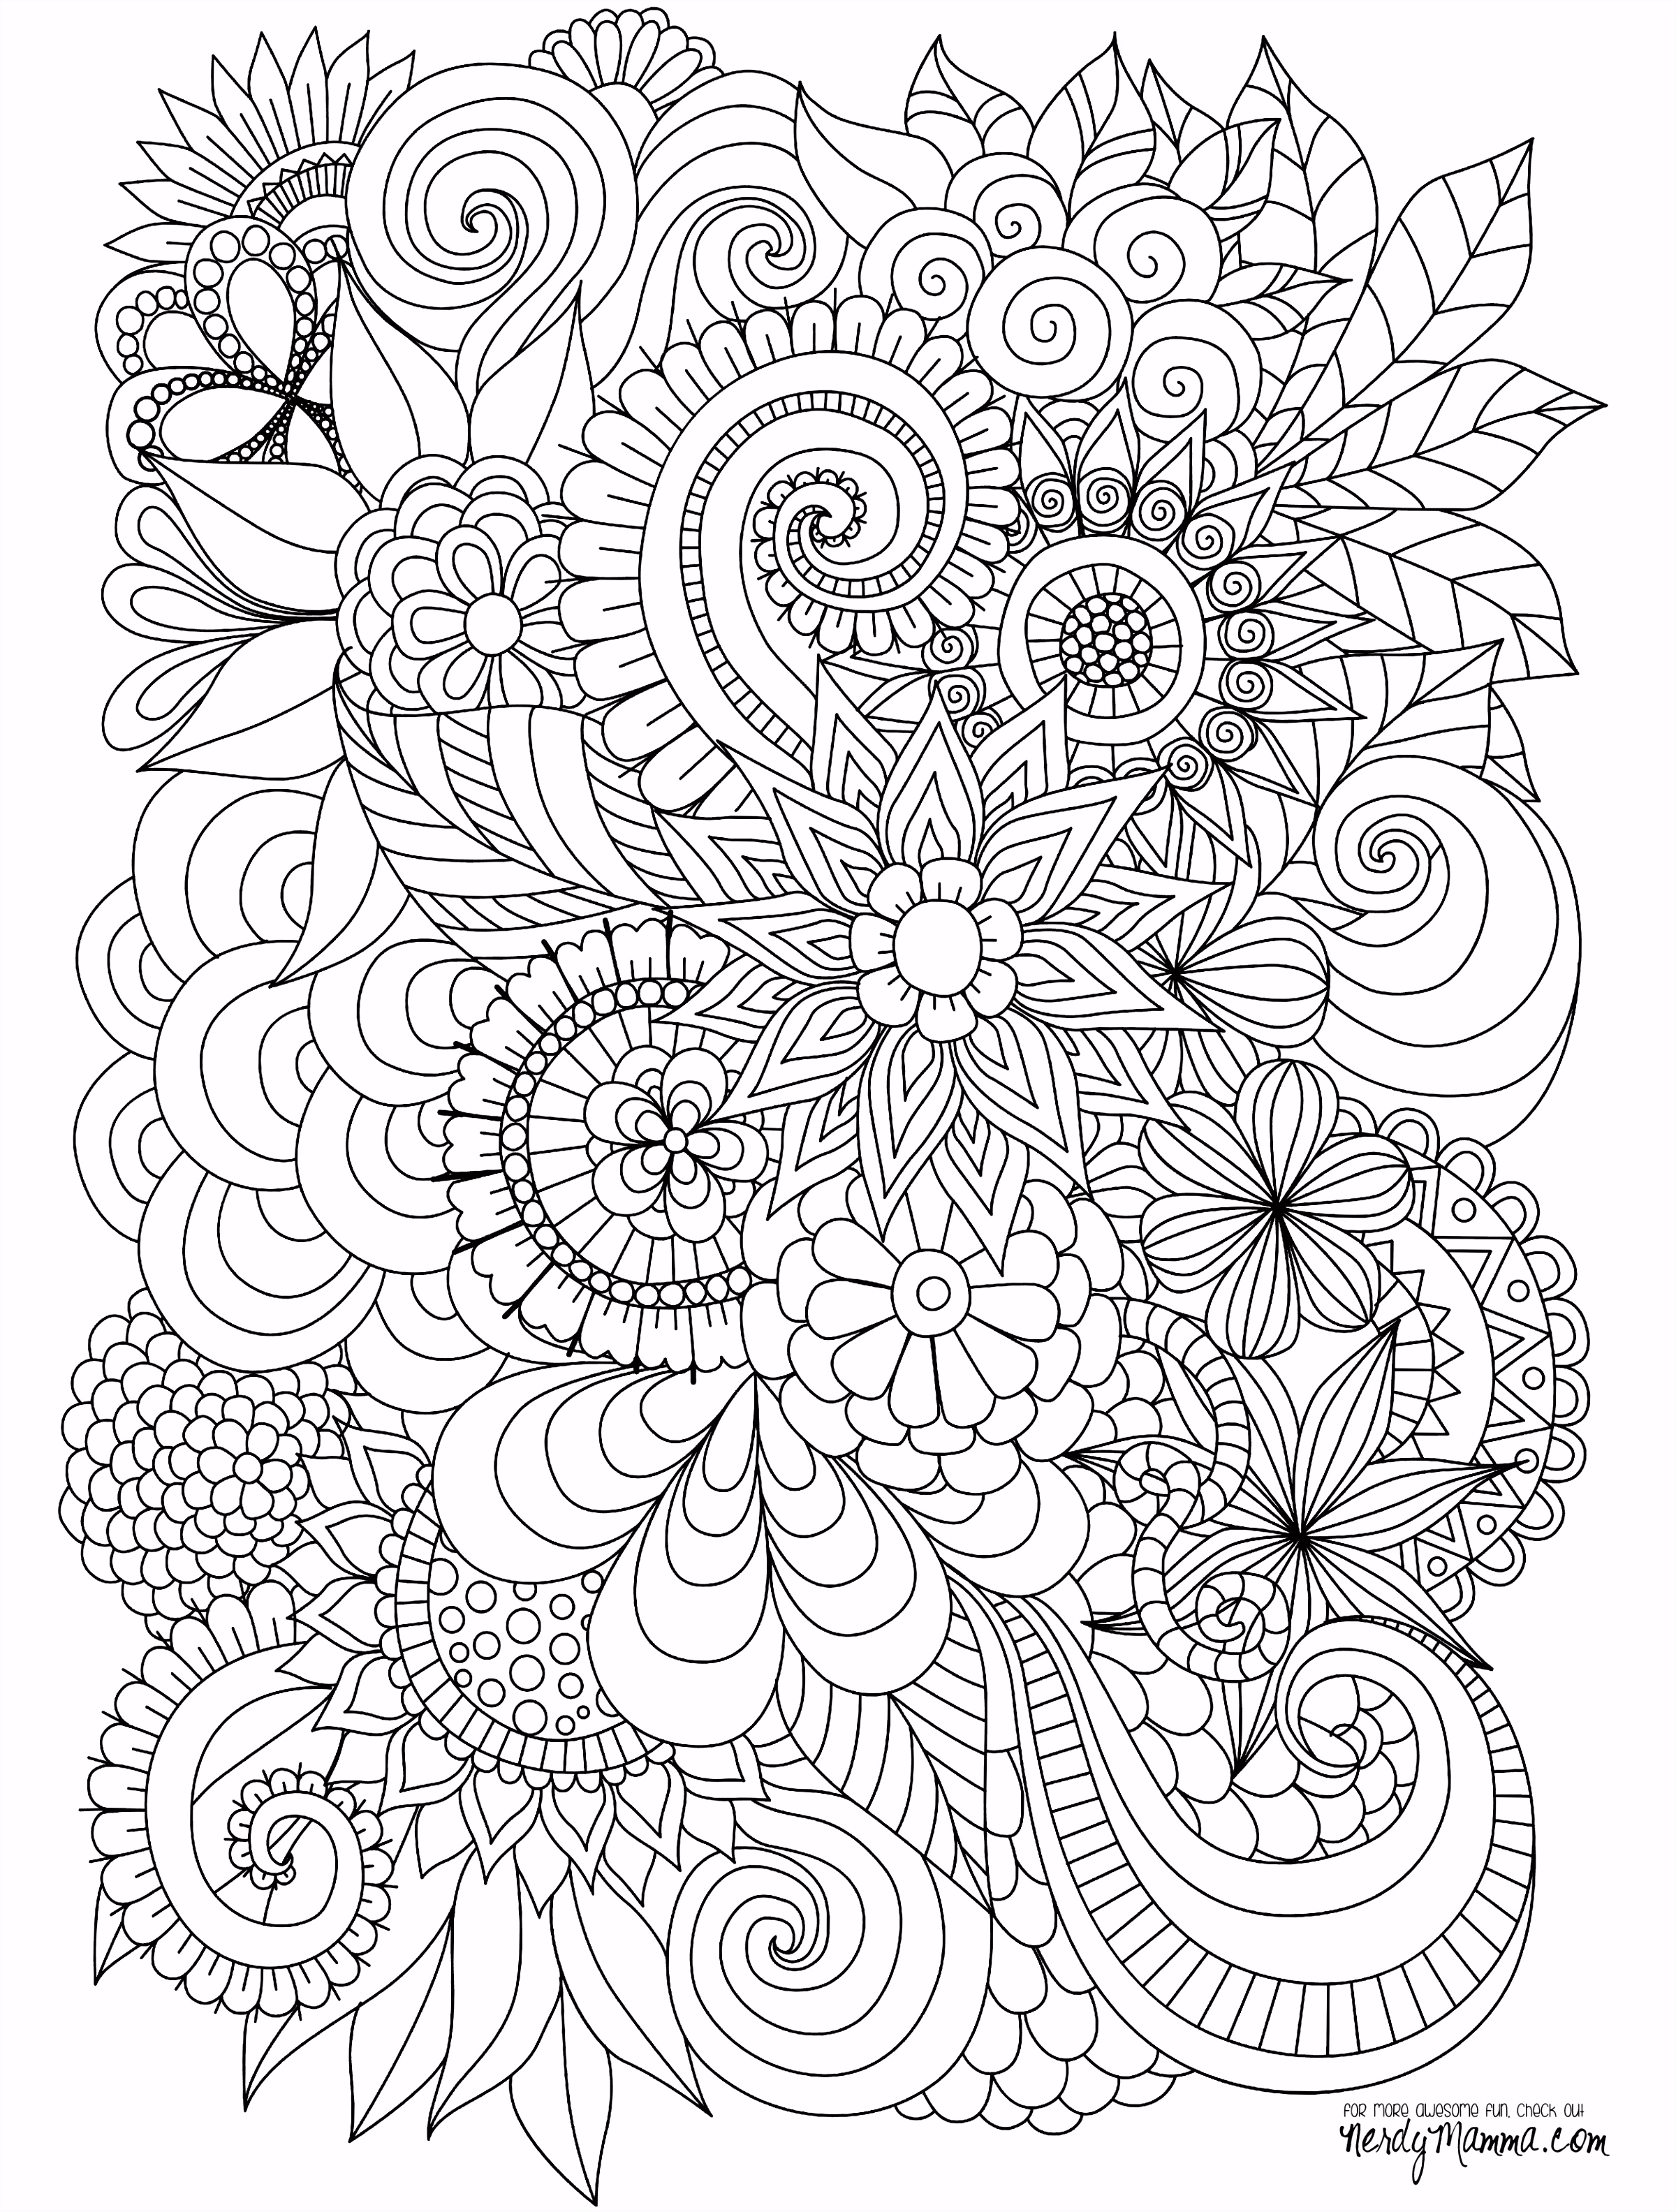 coloring pages Archives Katesgrove